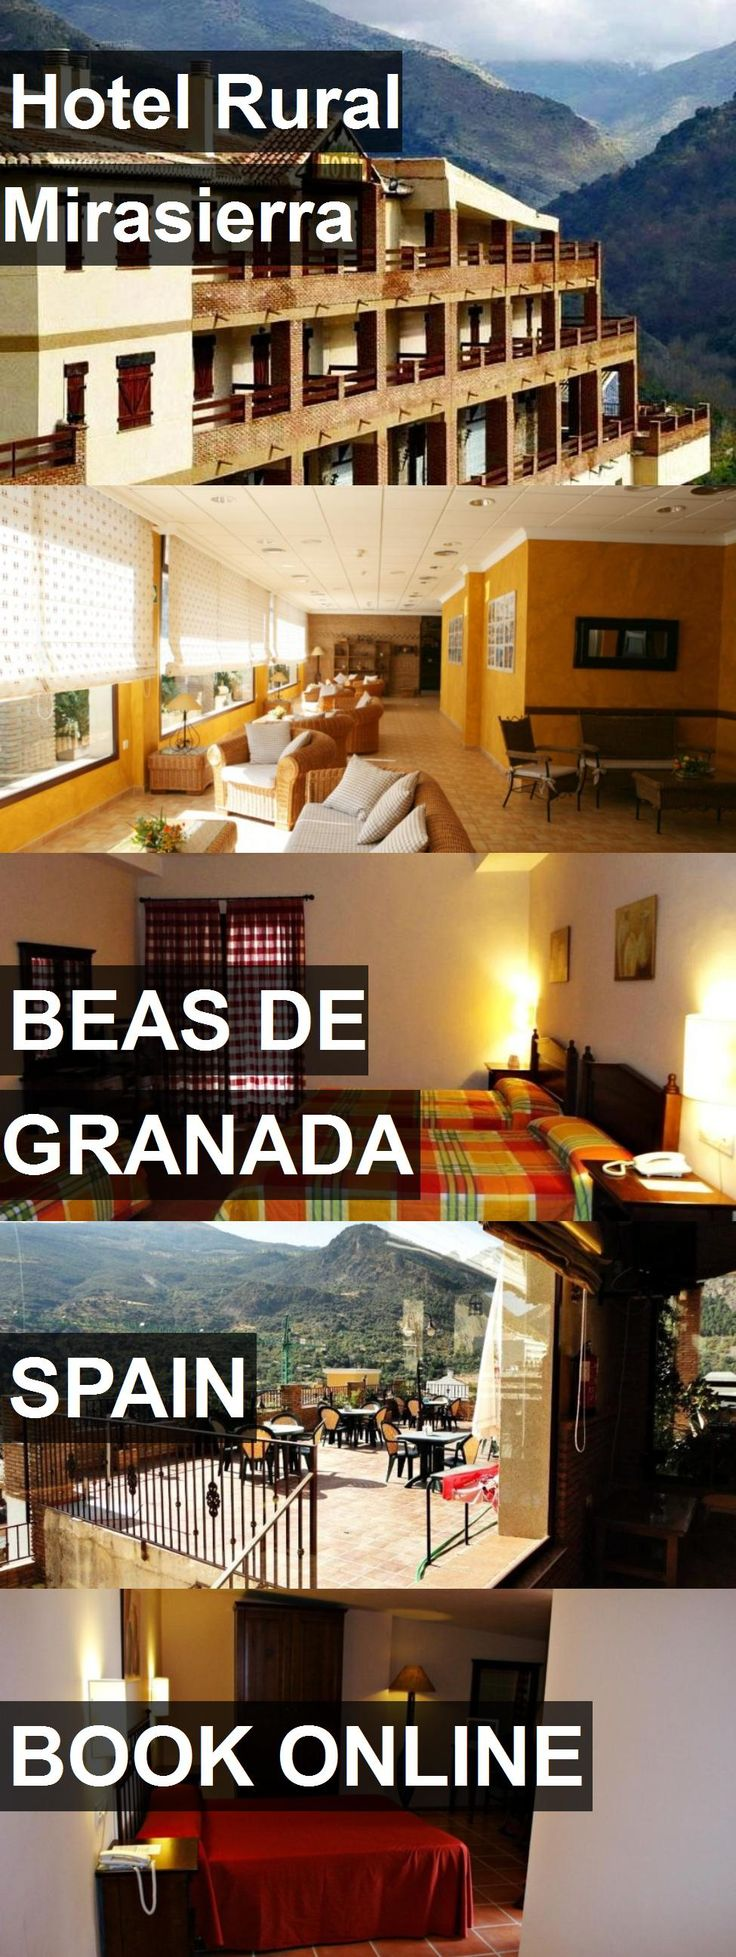 Hotel Hotel Rural Mirasierra in Beas de Granada, Spain. For more information, photos, reviews and best prices please follow the link. #Spain #BeasdeGranada #hotel #travel #vacation